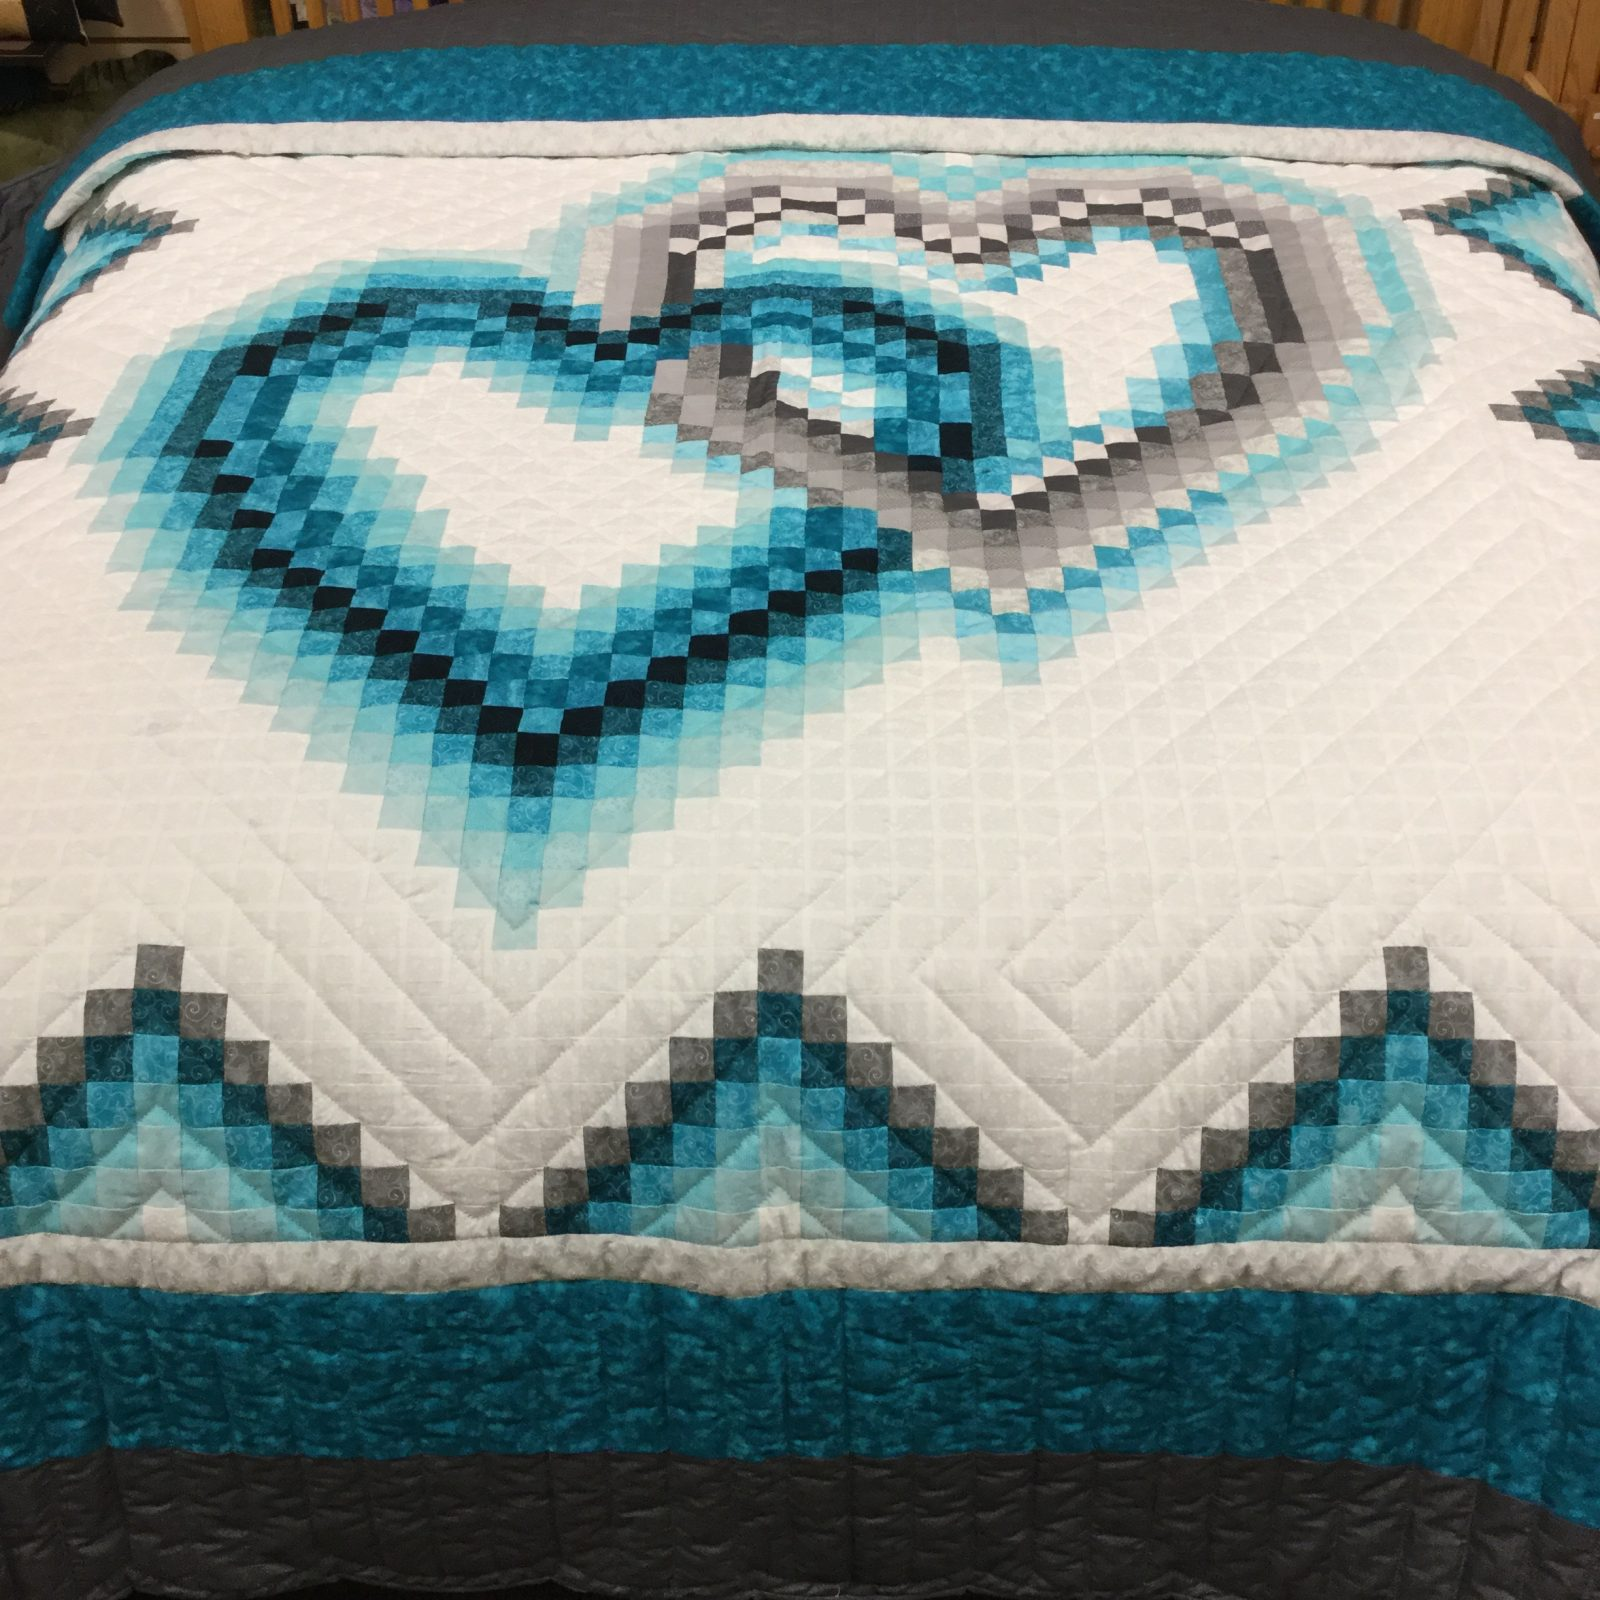 Homemade Quilts For Sale >> Linking Hearts Quilt | Family Farm Handcrafts | King